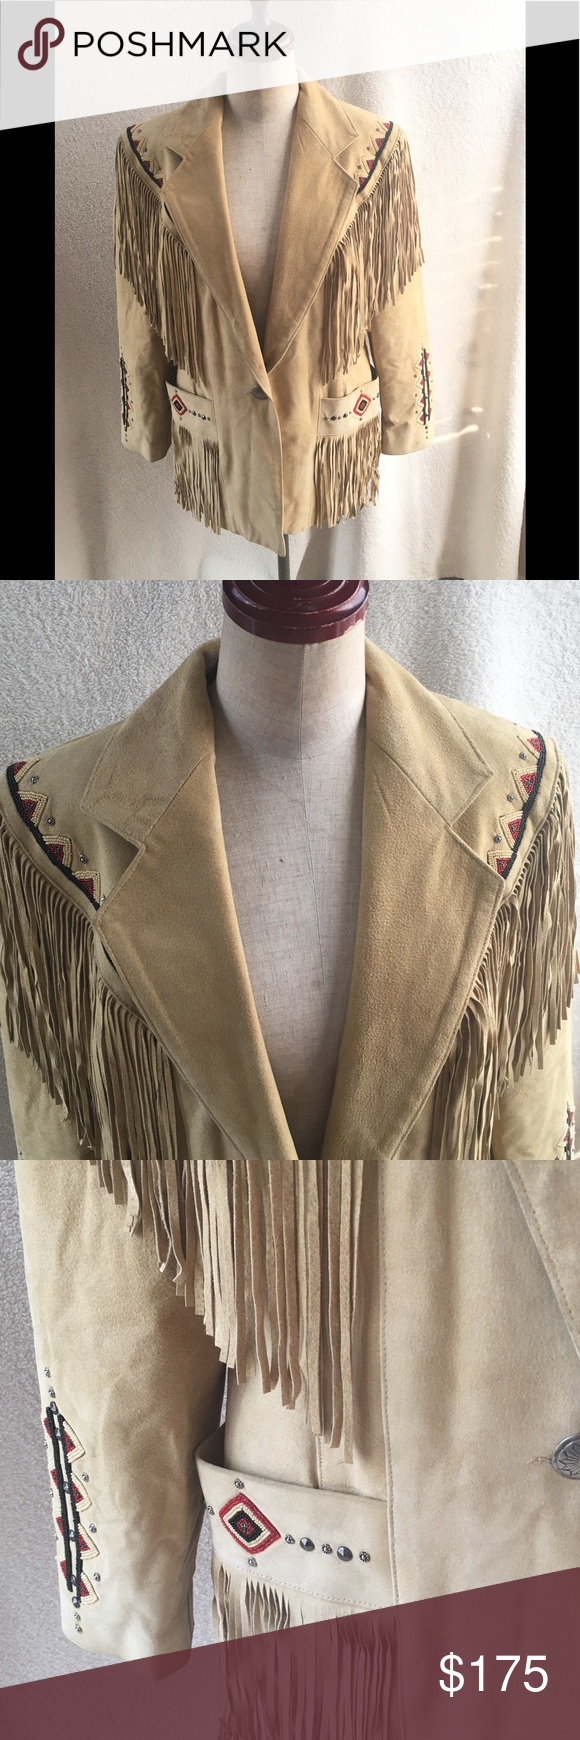 North American Frontier Fringe Leather Jacket Great